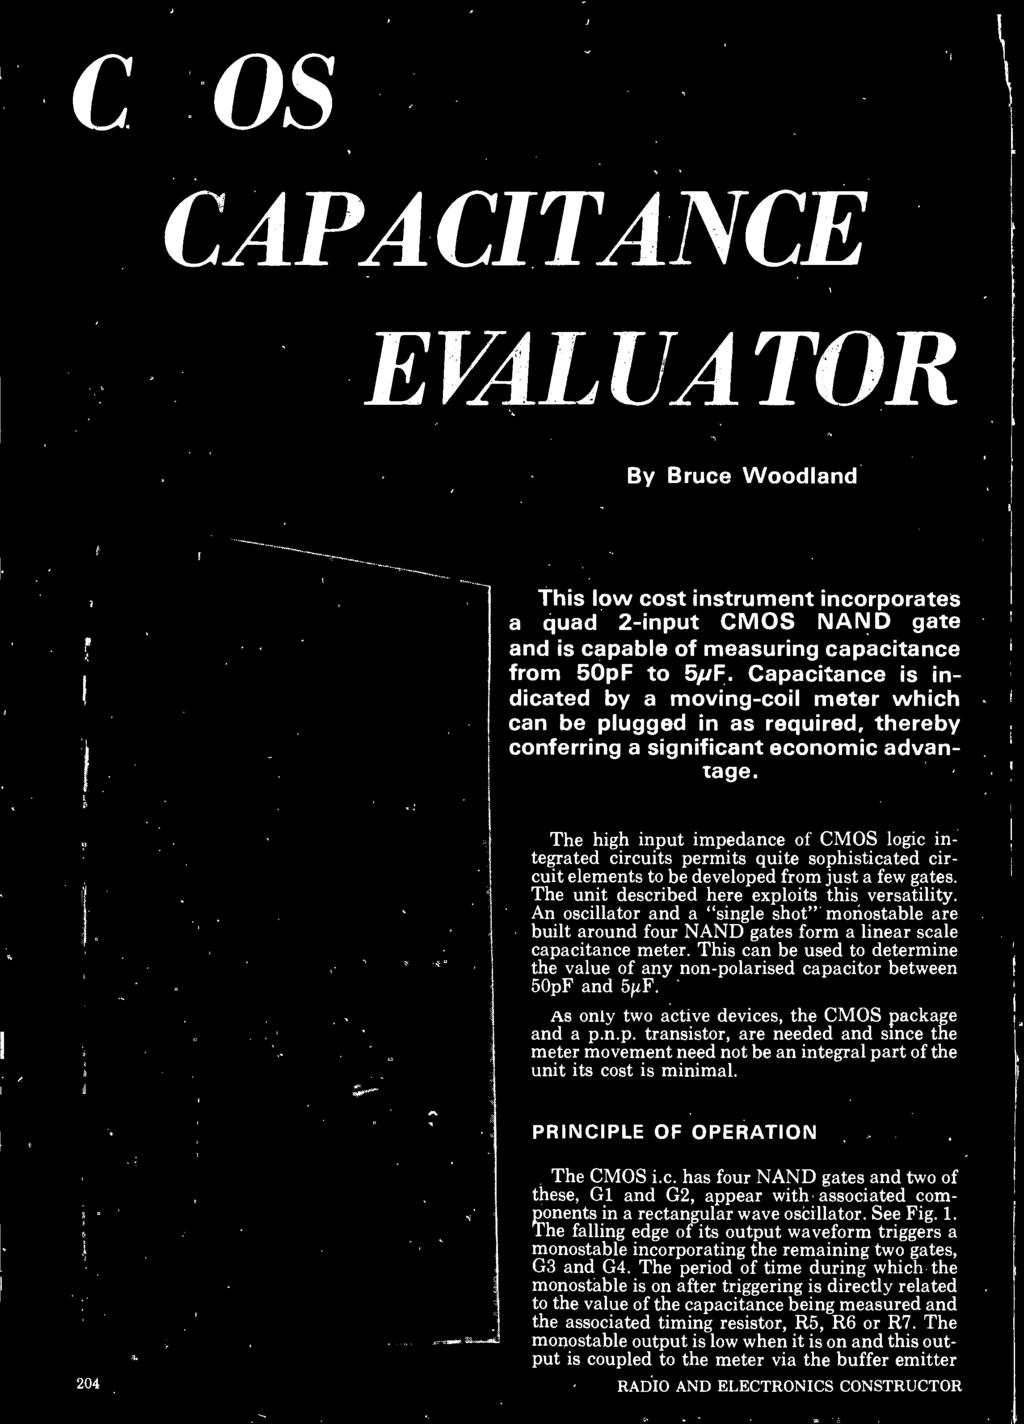 Cmos Capacitance Evaluator By Bruce Woodland Pdf Wiring Diagram For Ec2 With Ls1 Coils This Can Be Used To Determine The Value Of Any Non Polarised Capacitor Between 50pf